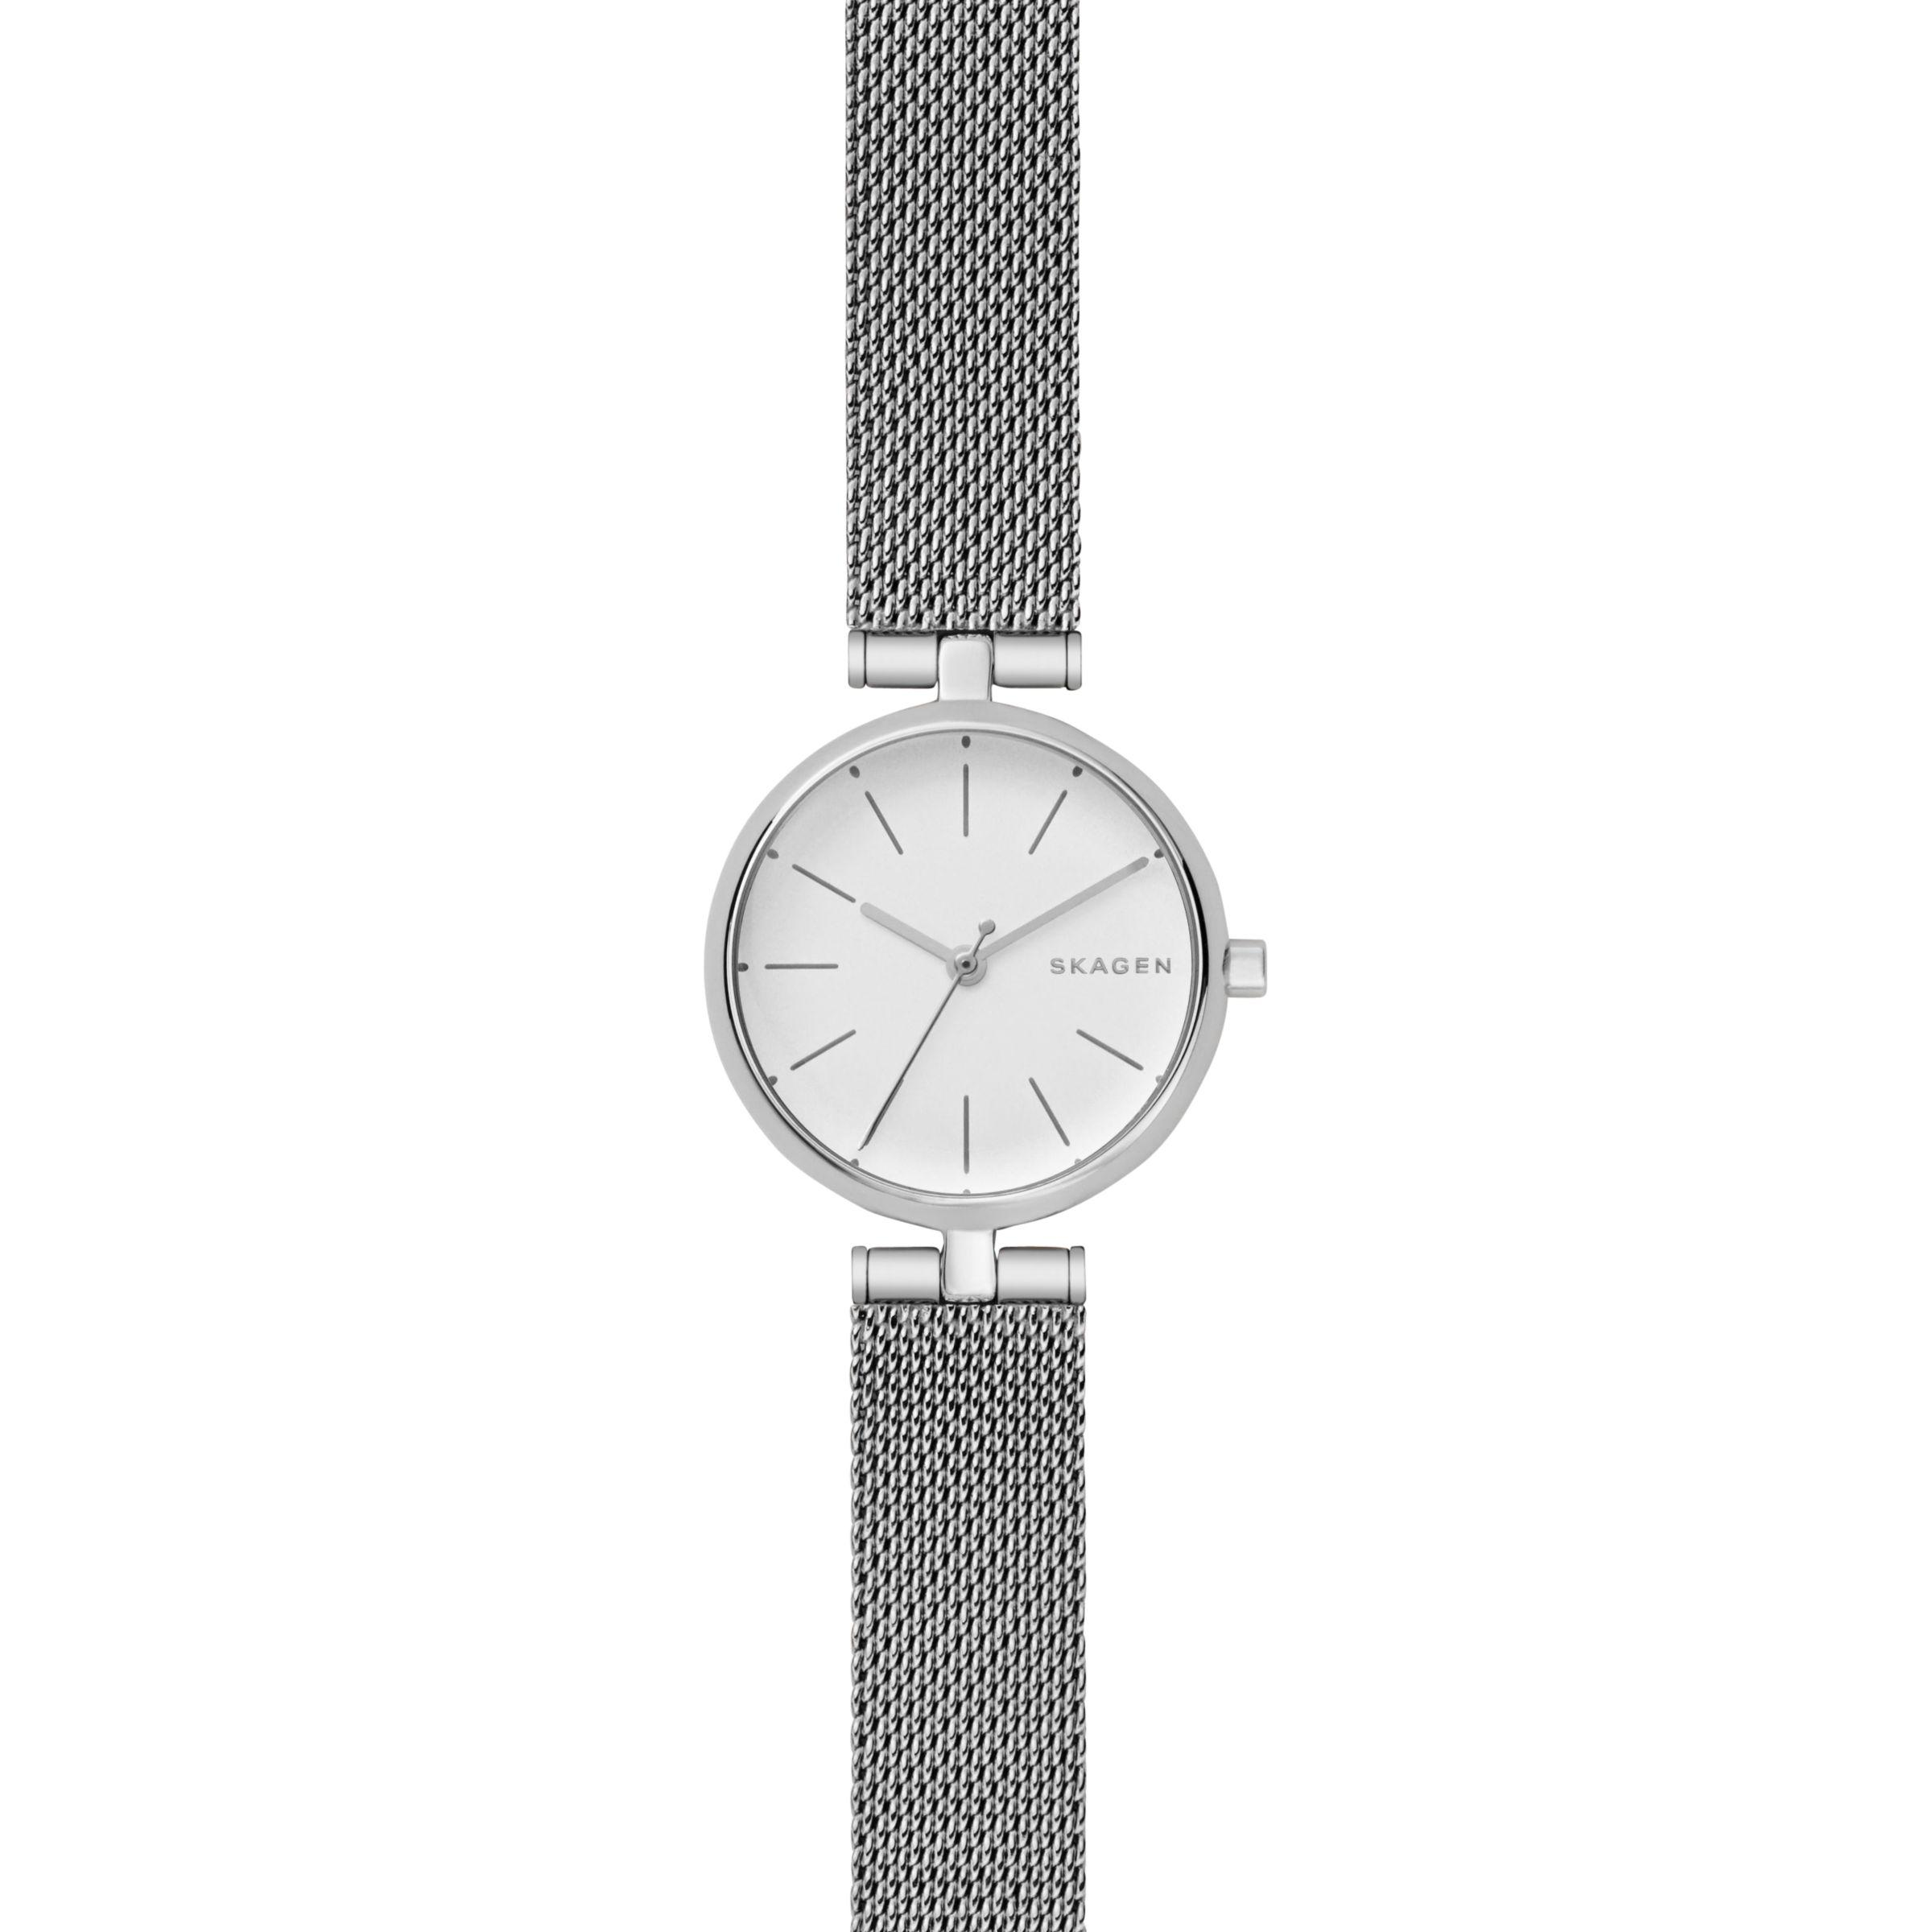 0050789bfa8 Skagen Signatur Women s Bracelet Watch in Metallic - Lyst